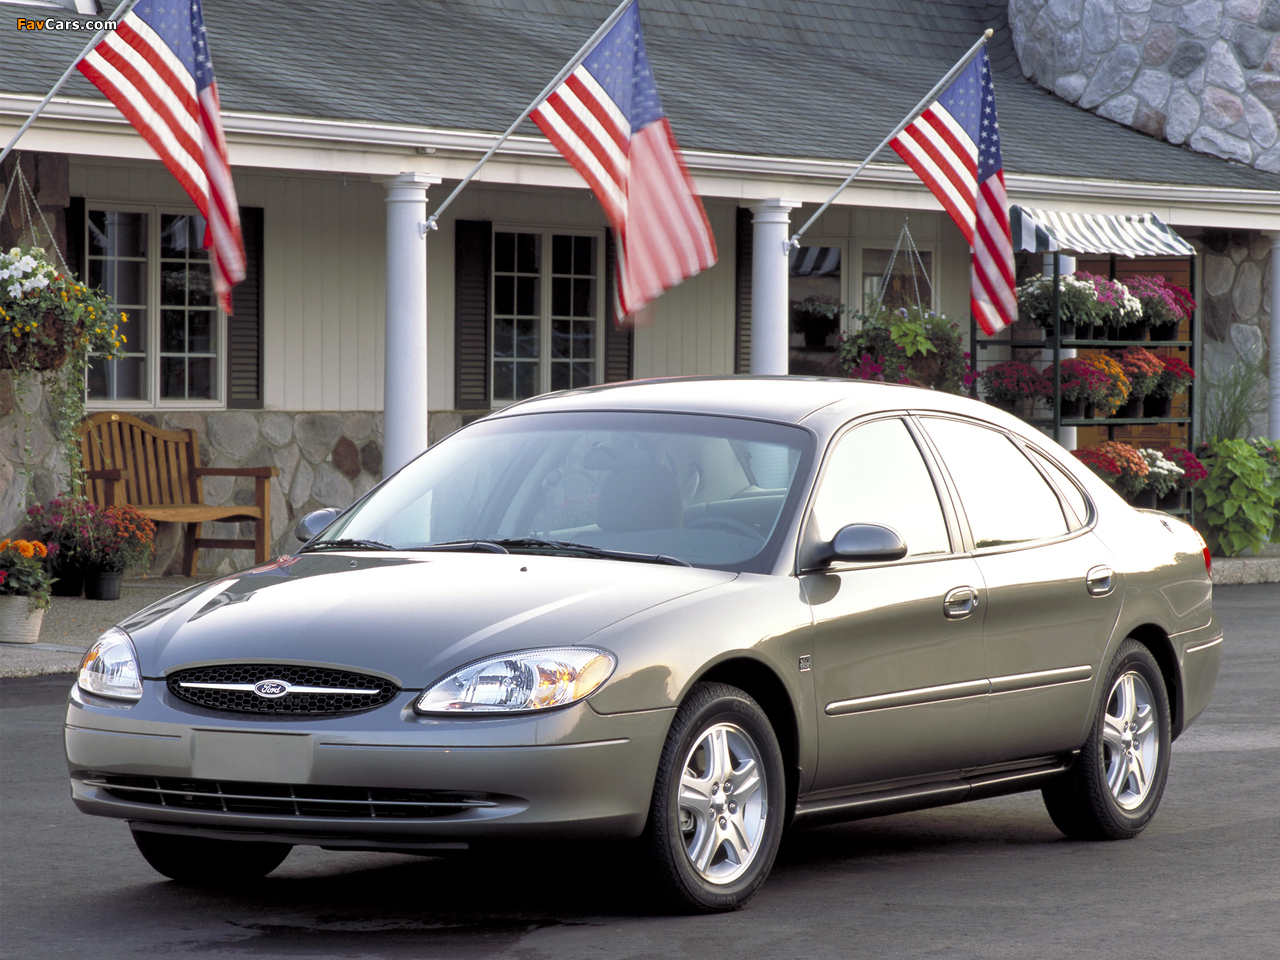 Ford Taurus 2000 06 Pictures 1280x960